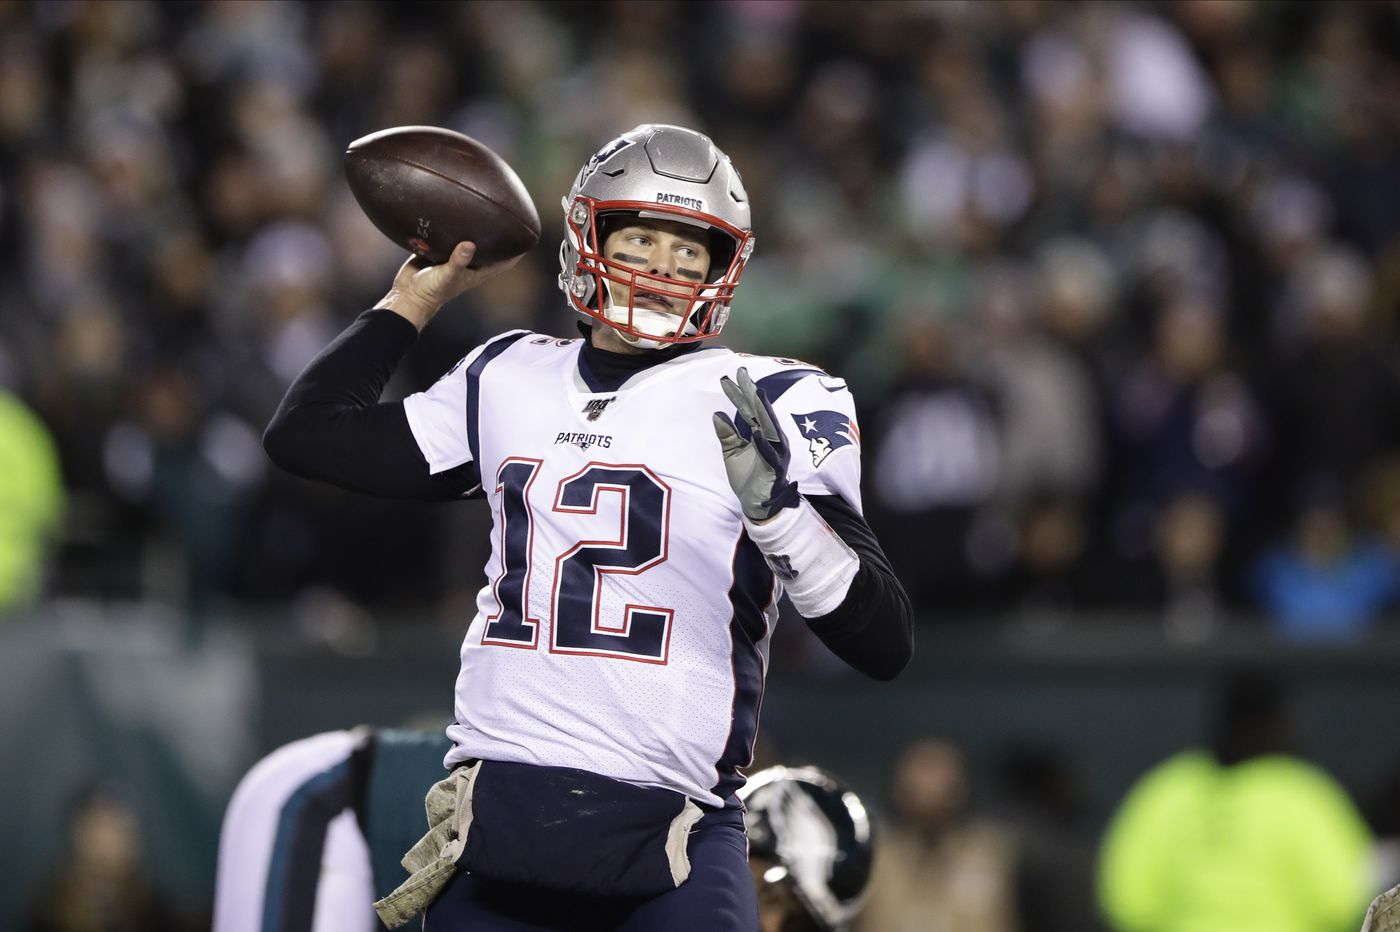 Sports betting: Tom Brady's Buccaneers have better Super Bowl odds than Eagles